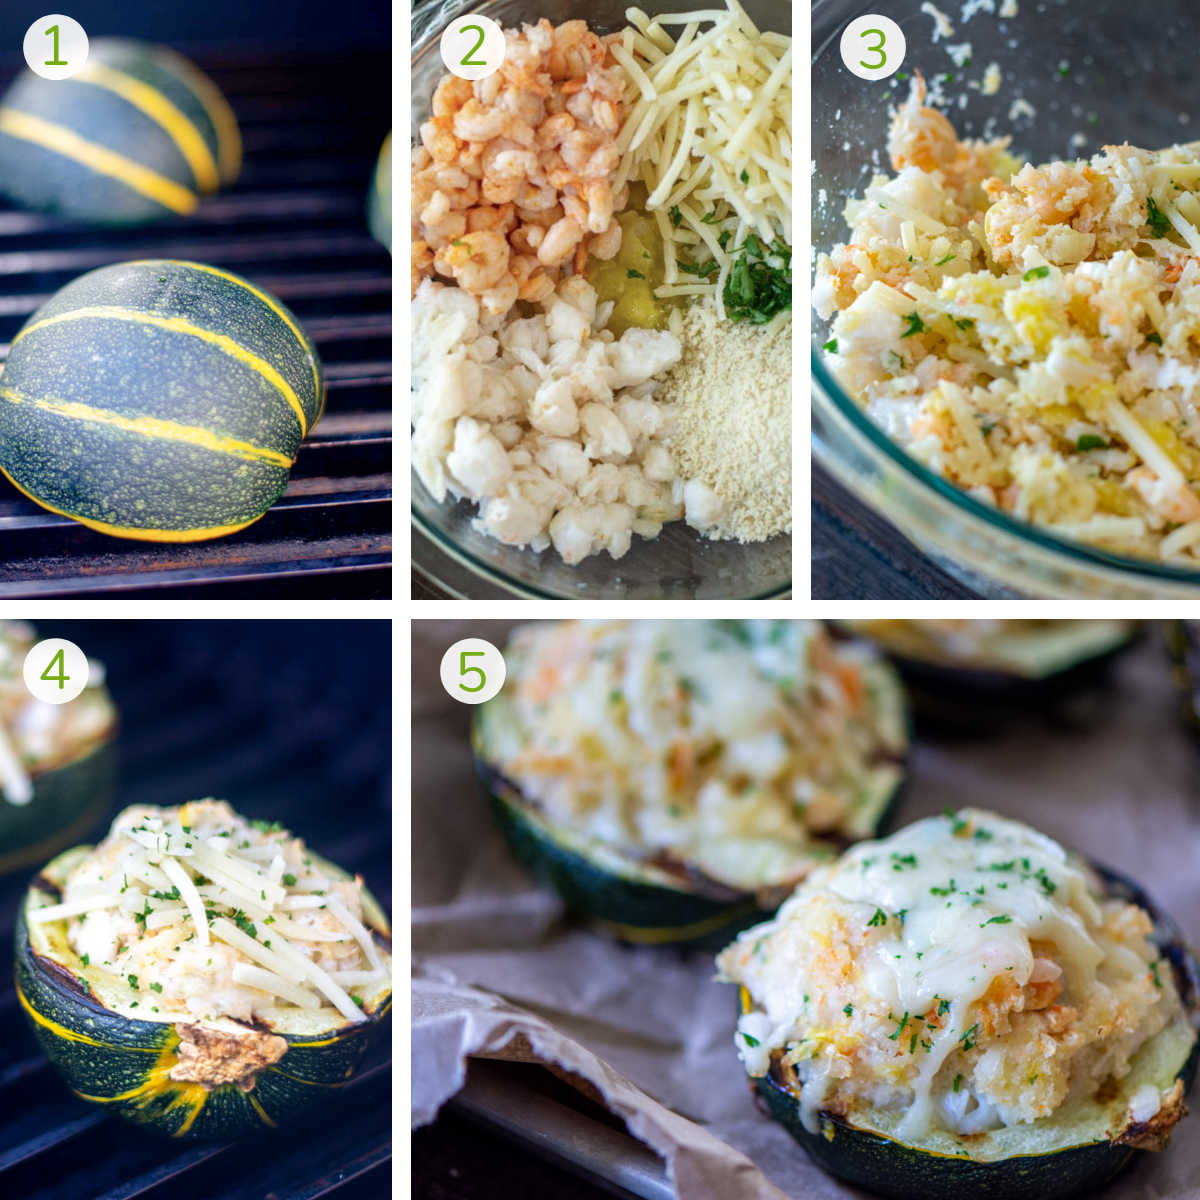 several process photos showing grilling the squash, stuffing it with seafood mix, topping with cheese and grilling.